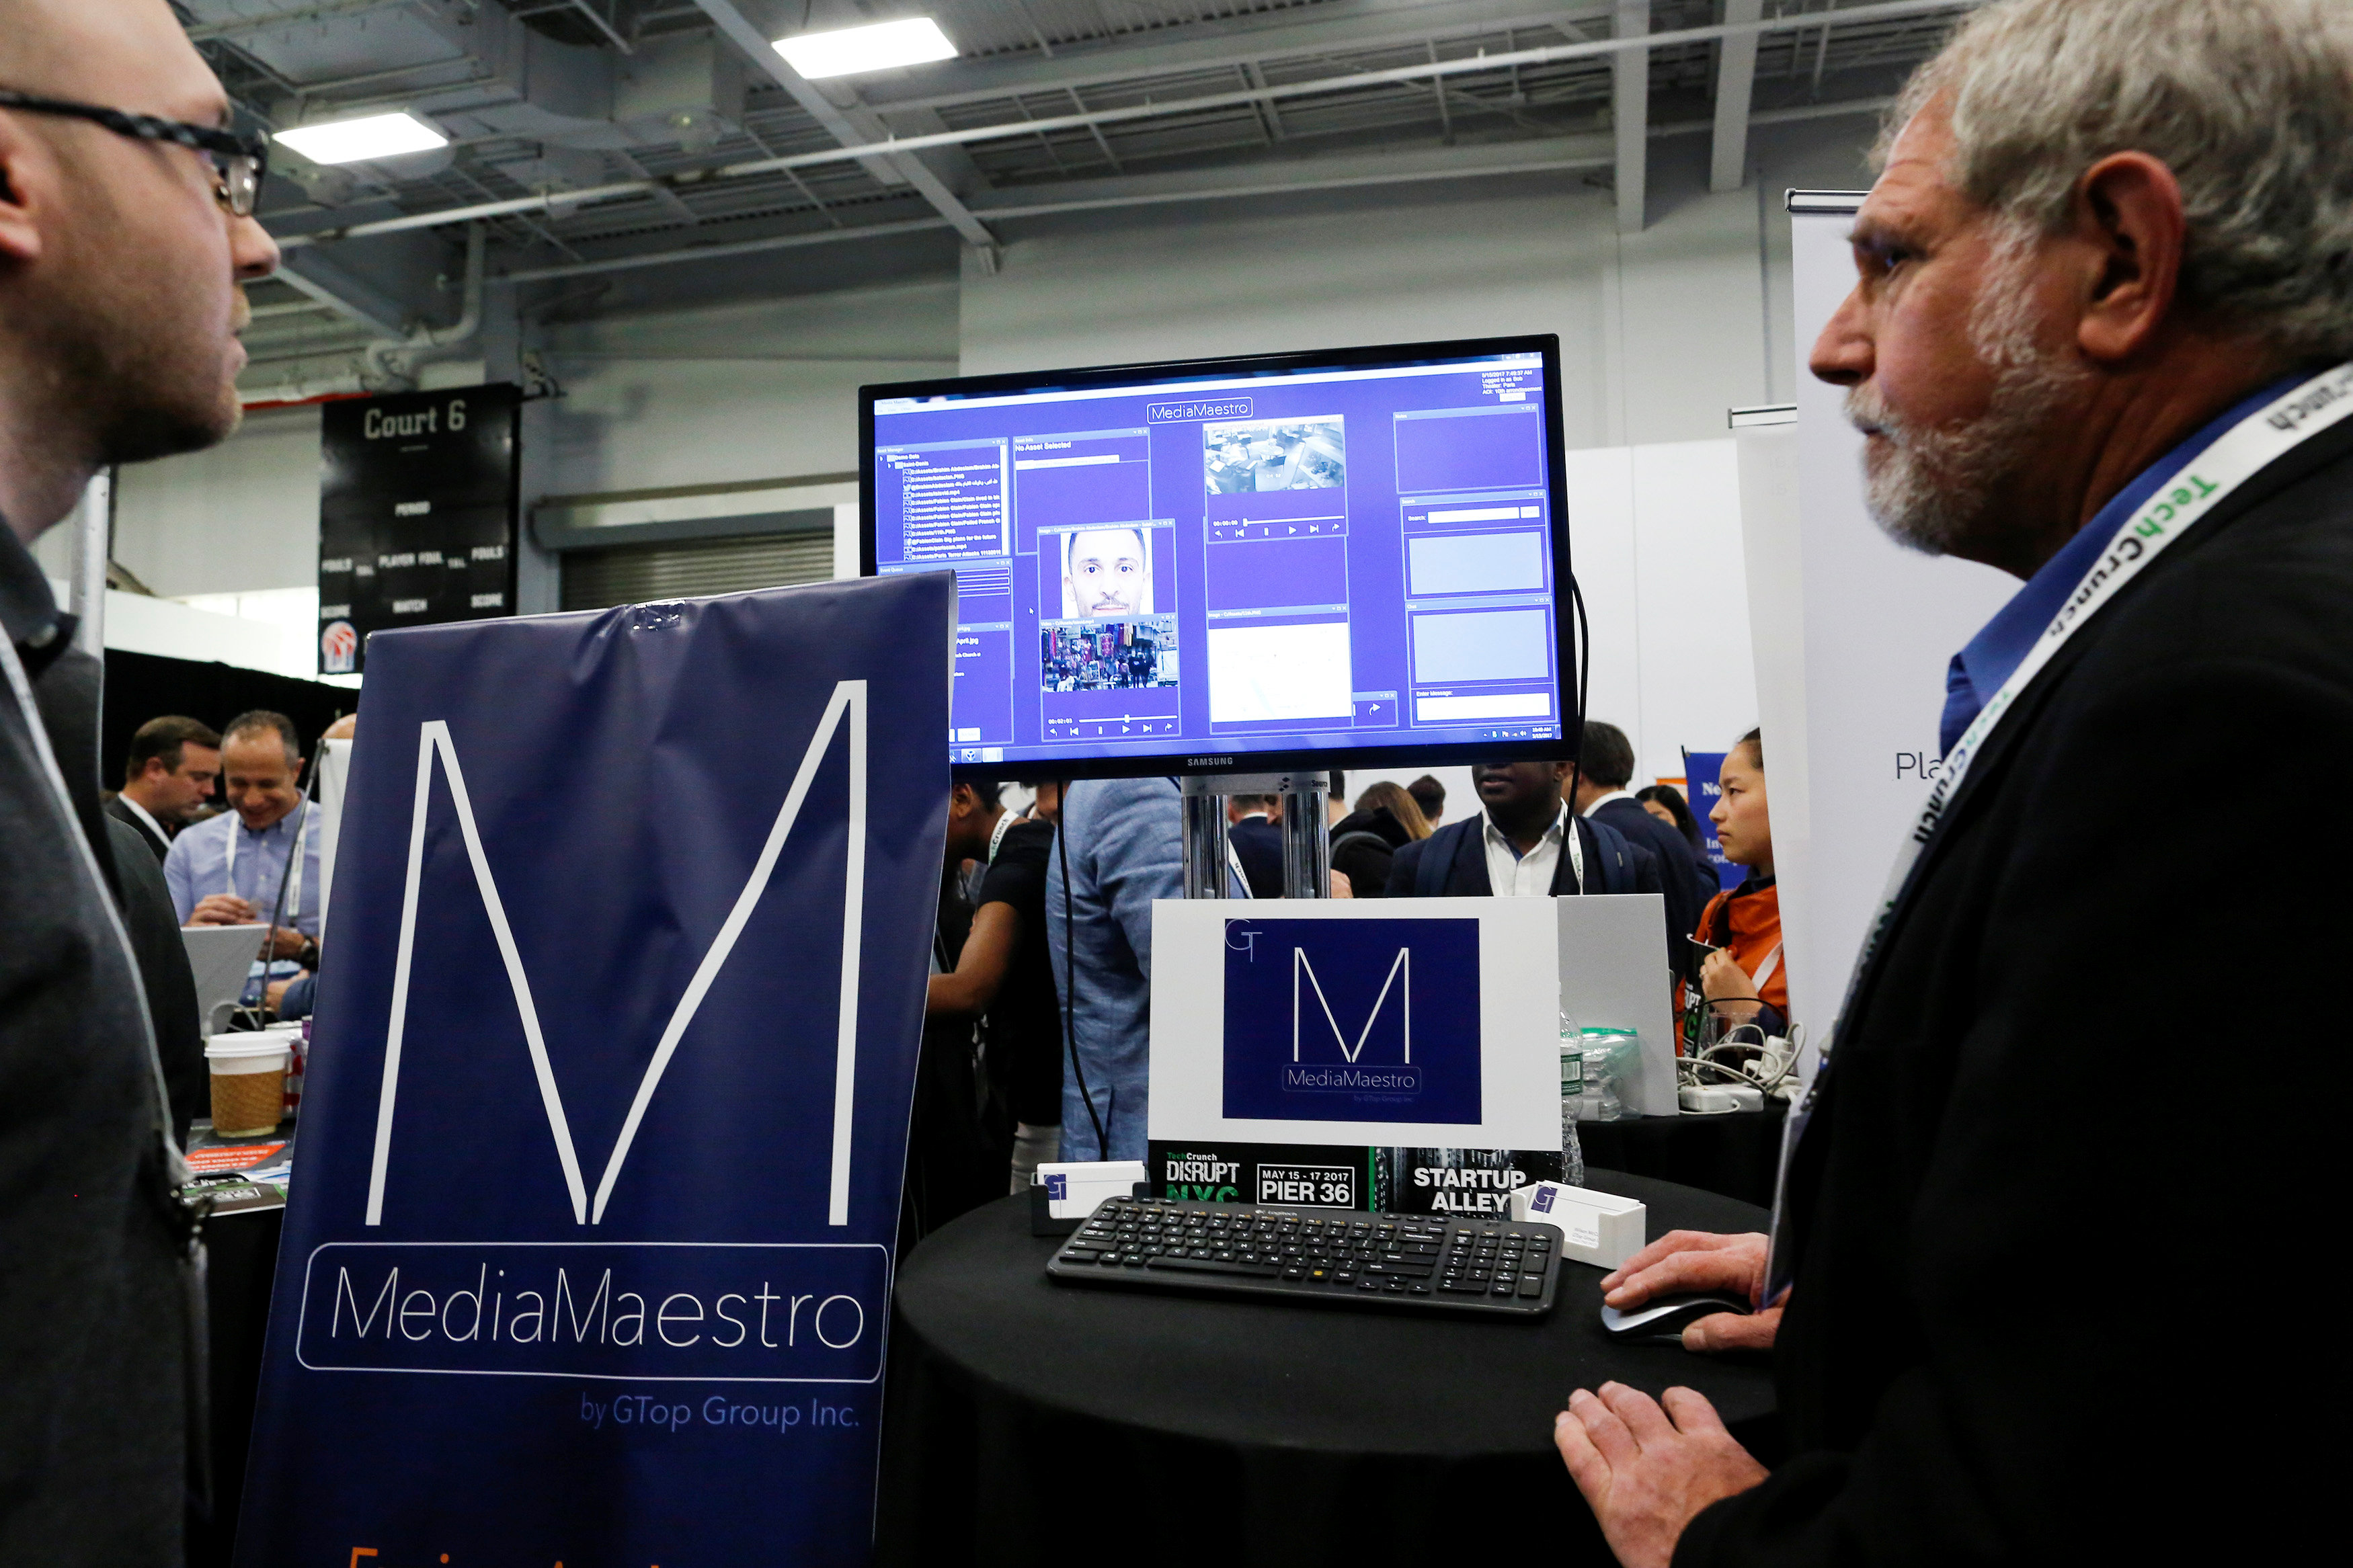 Gary Olson (R) of GTop Group gives a demonstration of their Anti-Terrorism and Situational Awareness technology platform to attendees during the TechCrunch Disrupt event in Manhattan, in New York City, NY on May 15, 2017. (REUTERS/Eduardo Munoz)